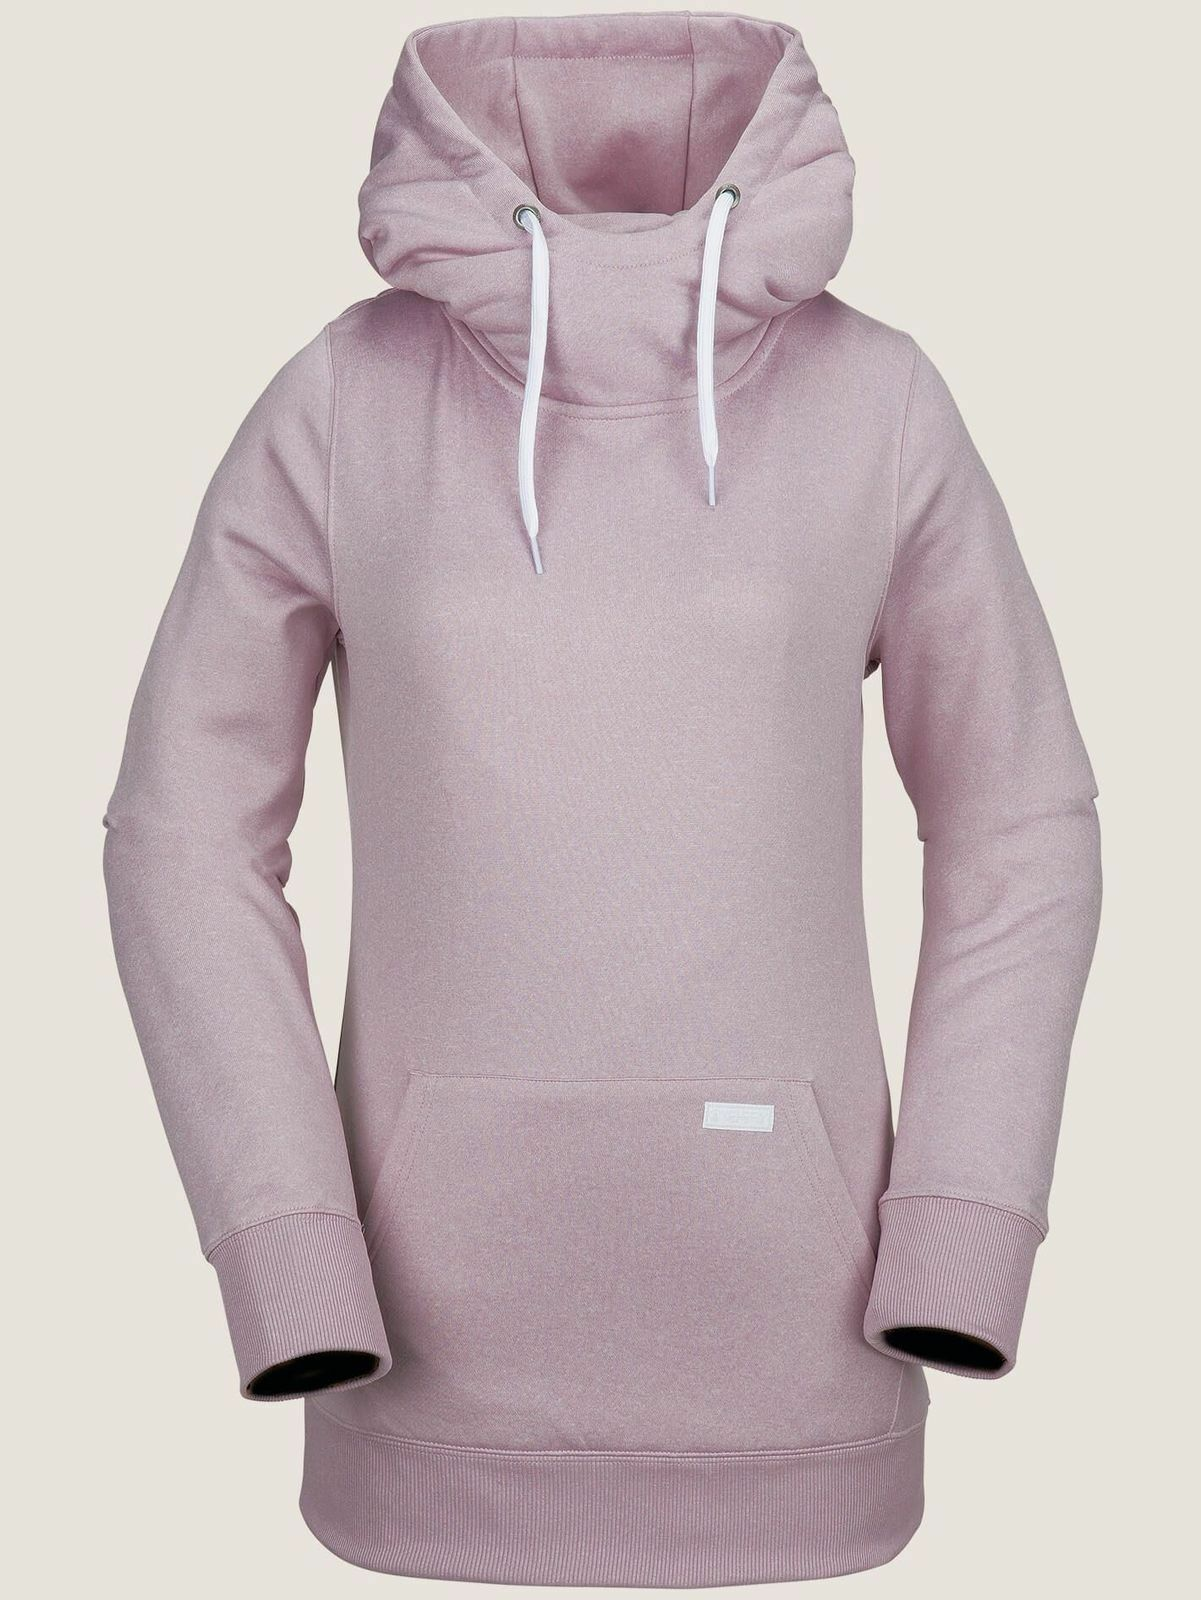 2019 NWT WOMENS YERBA PULL OVER FLEECE  HOODIE  50 S pink Wood soft long fit  come to choose your own sports style